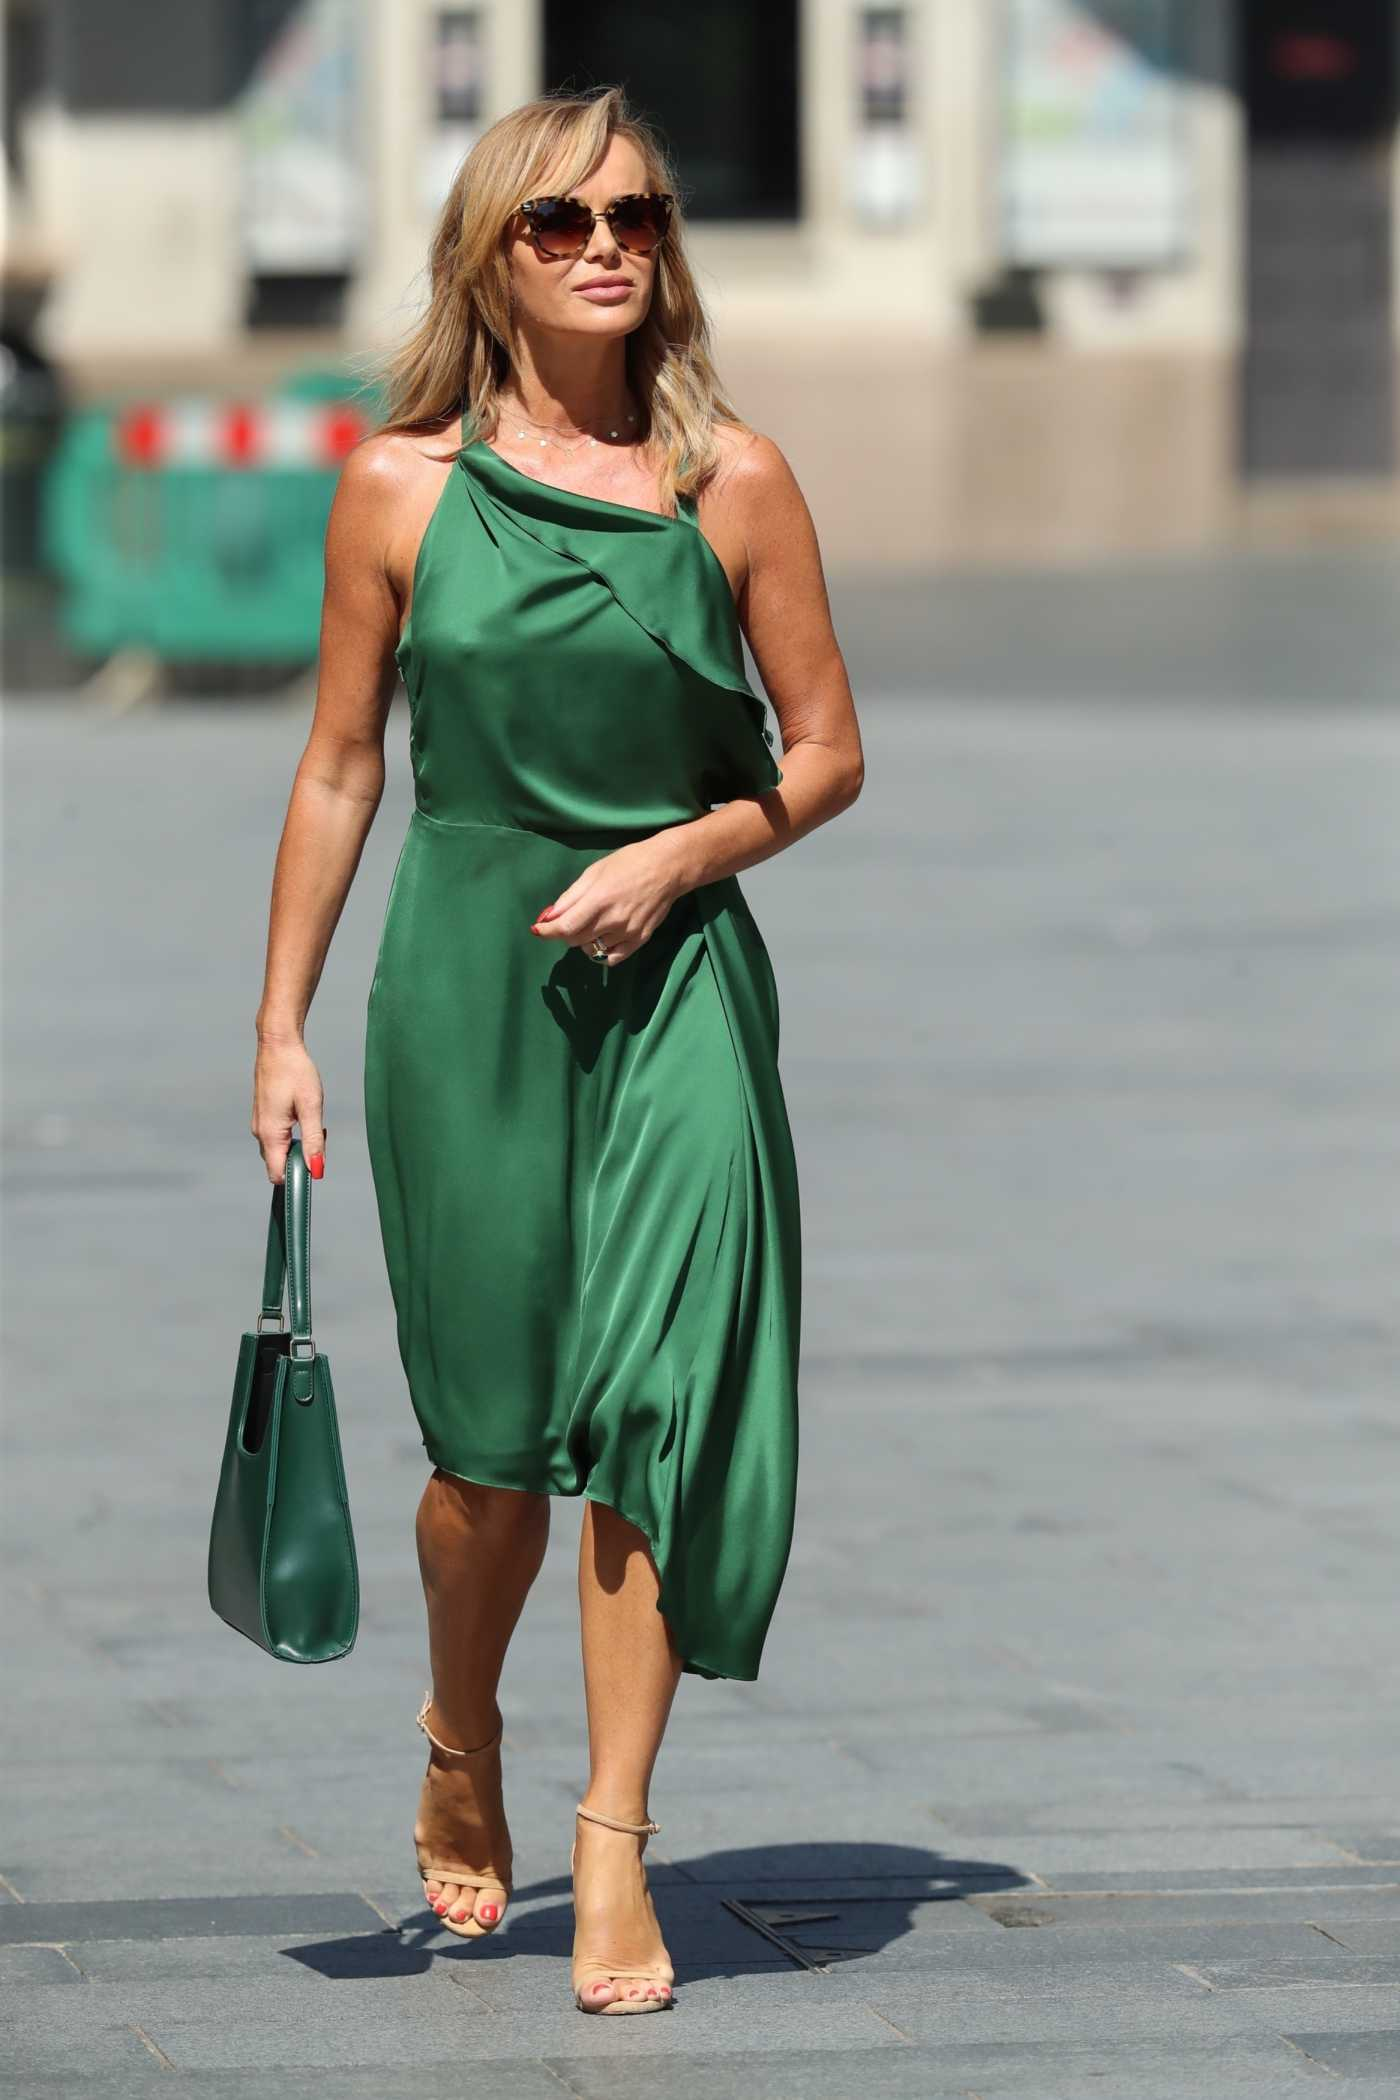 Amanda Holden in a Green Flowing Dress Was Seen Out in London 06/26/2020